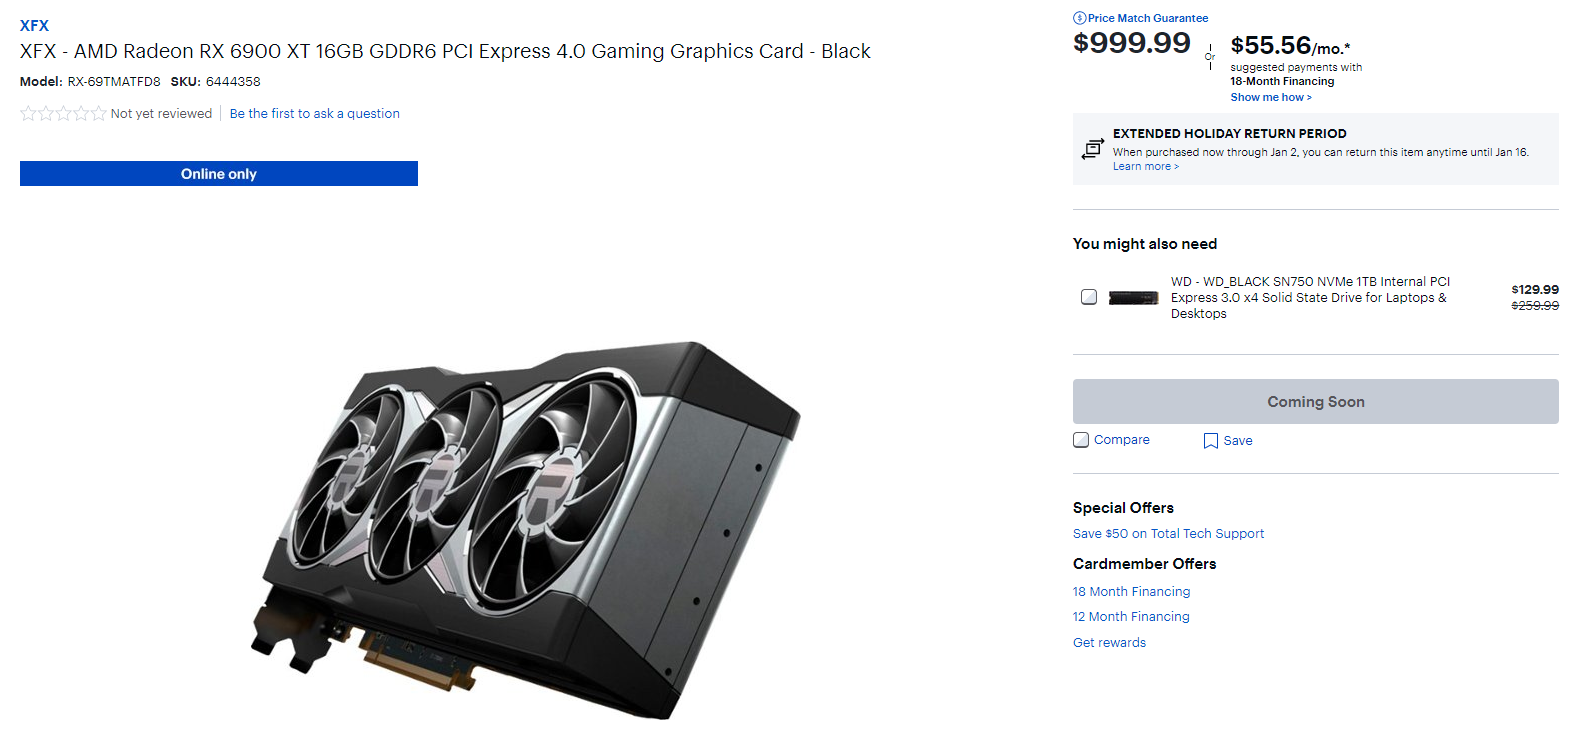 Best Buy RX 6900 XT coming soon listing